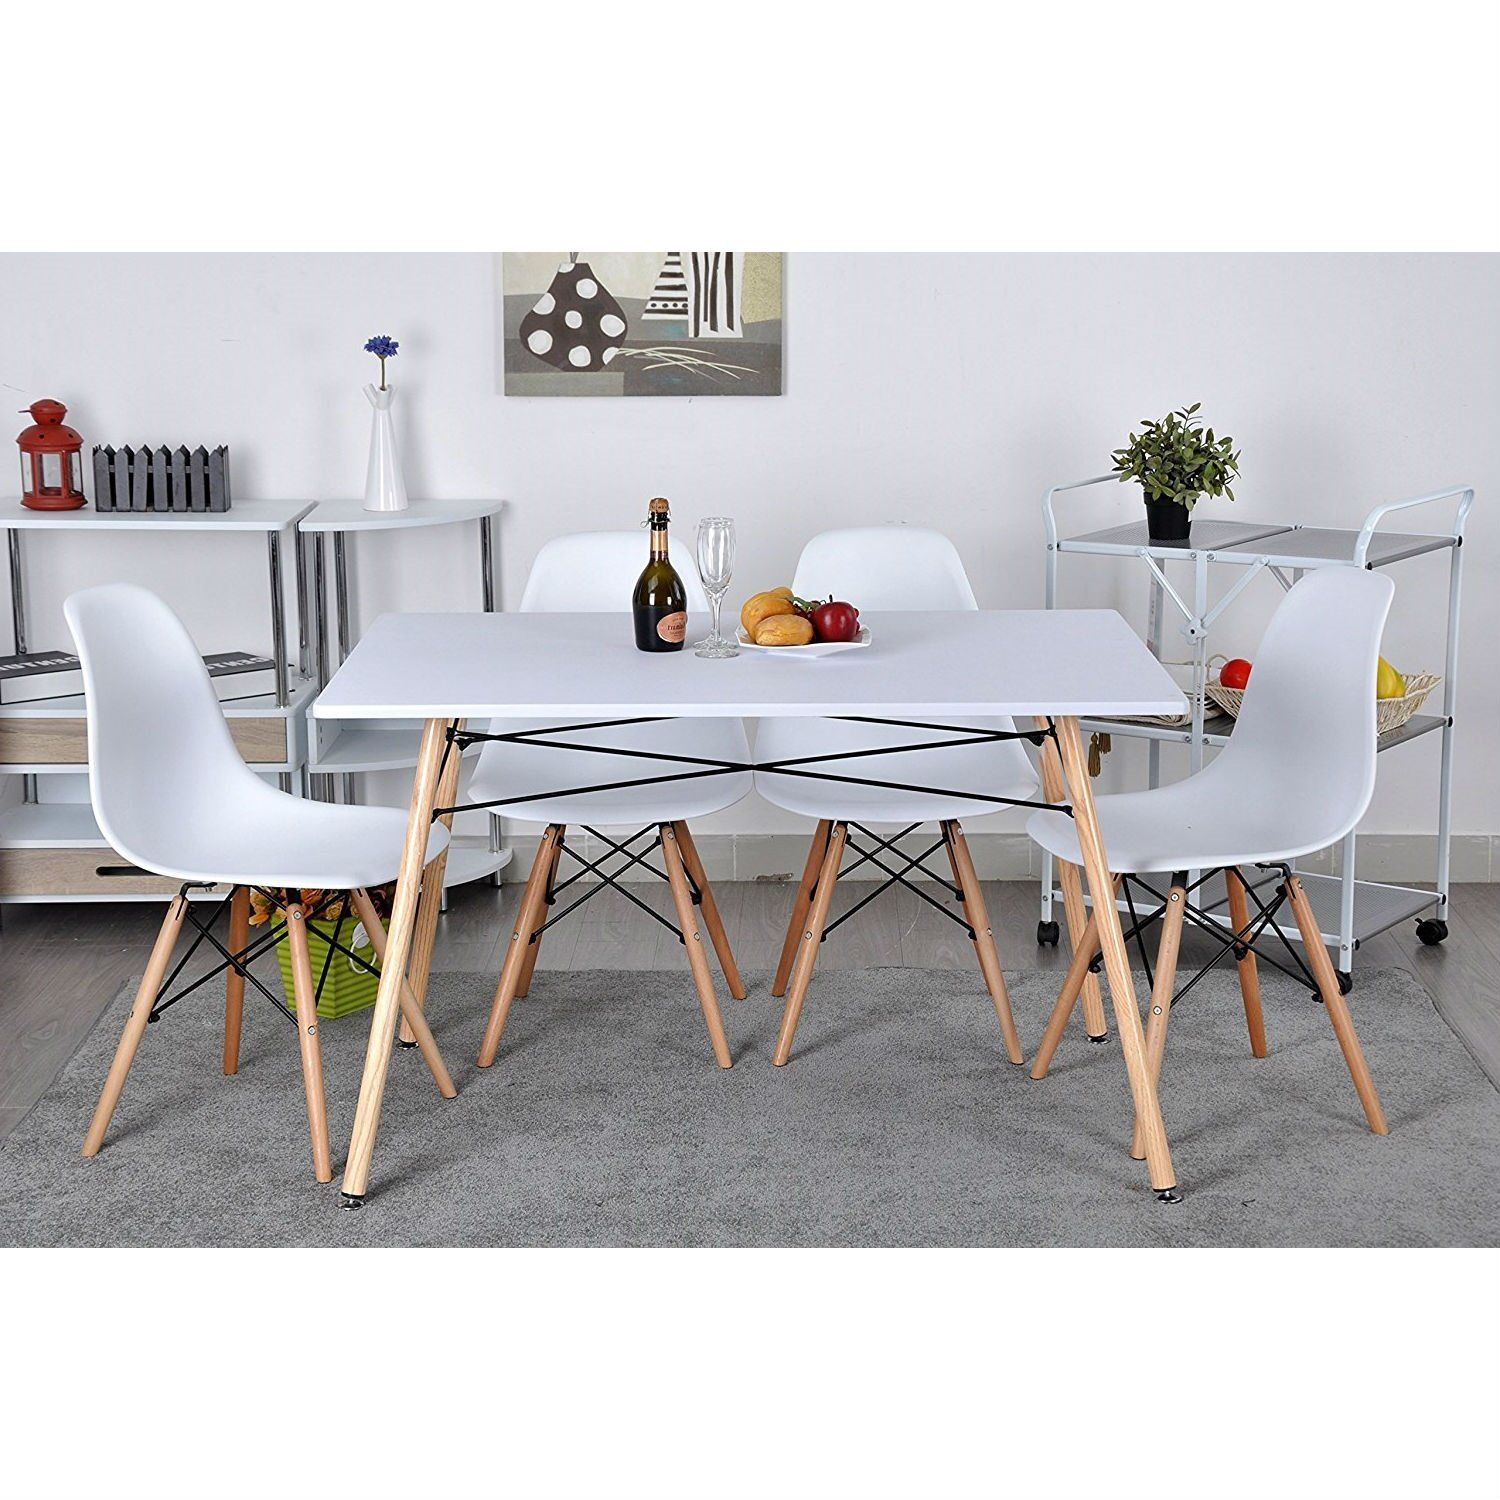 This Set of 4 Modern Armless Dining Chairs in White with